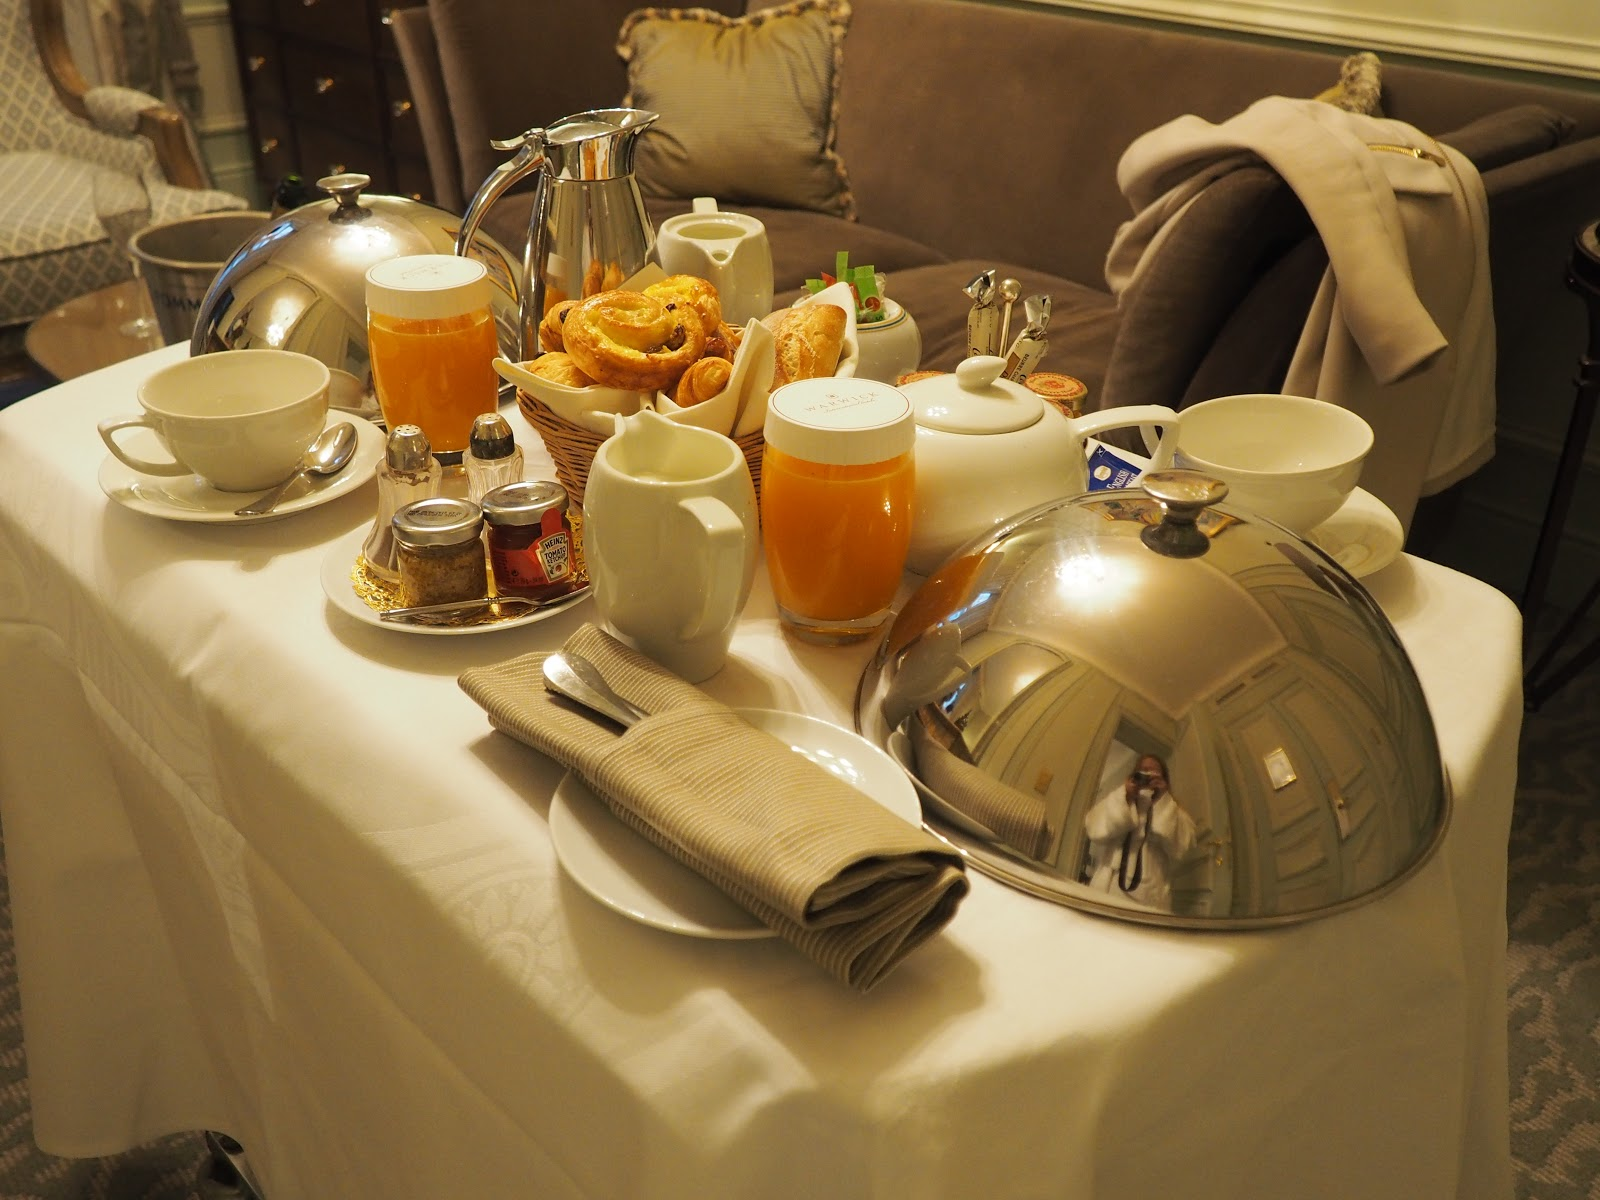 room service breakfast with silver platters at the Warwick Hotel Westminster